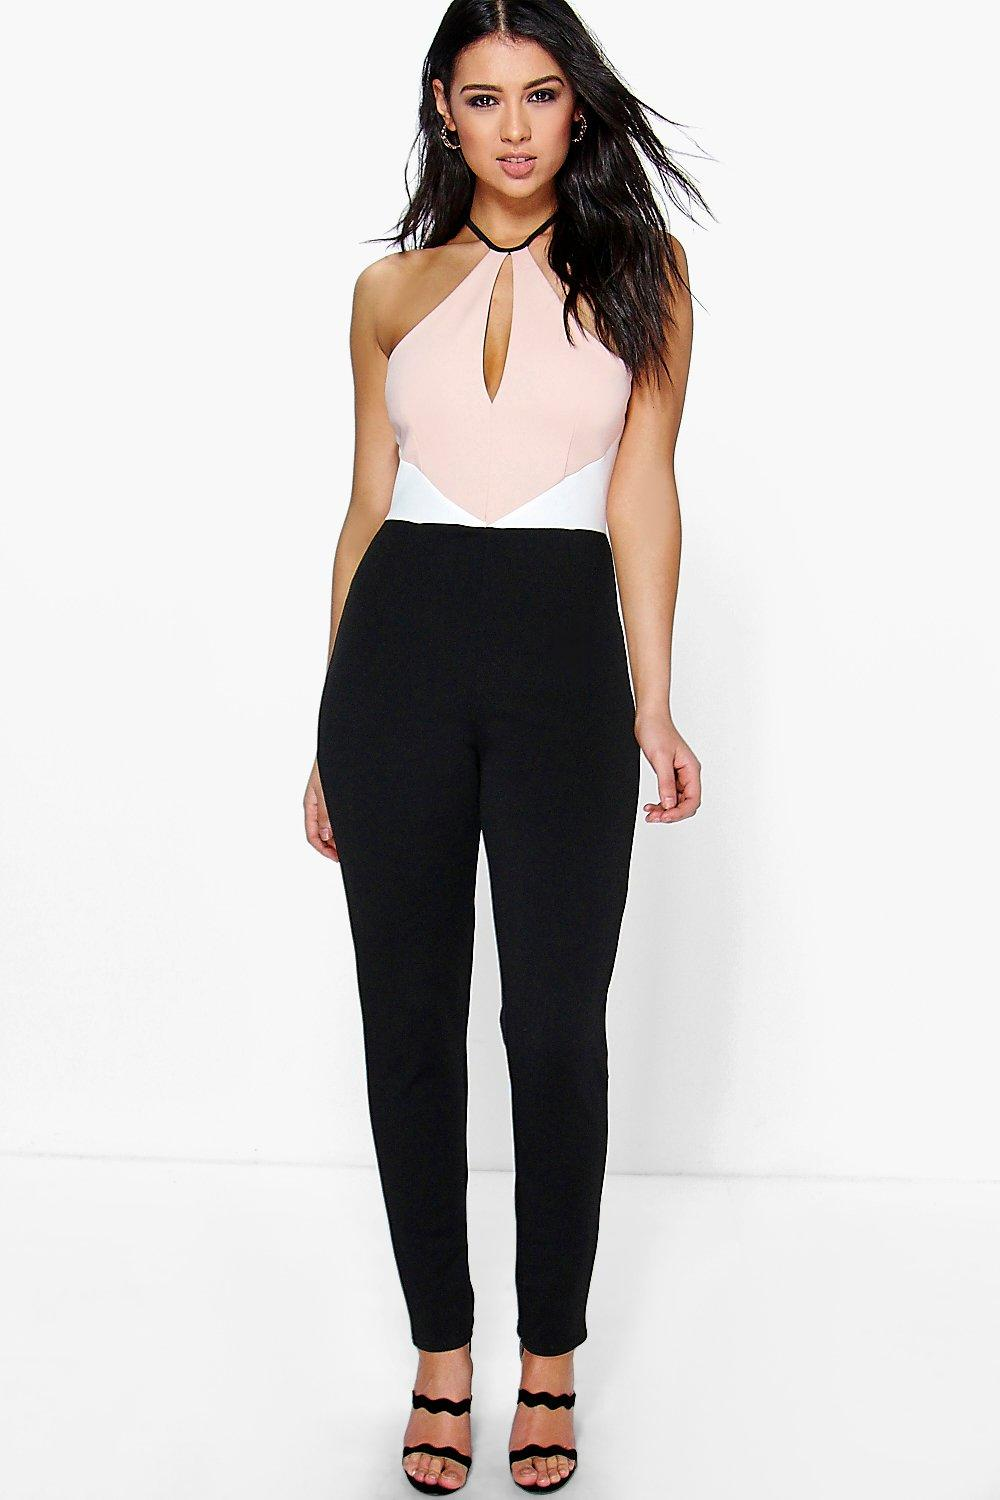 Lola Cut Away Shoulder Colour Block Jumpsuit